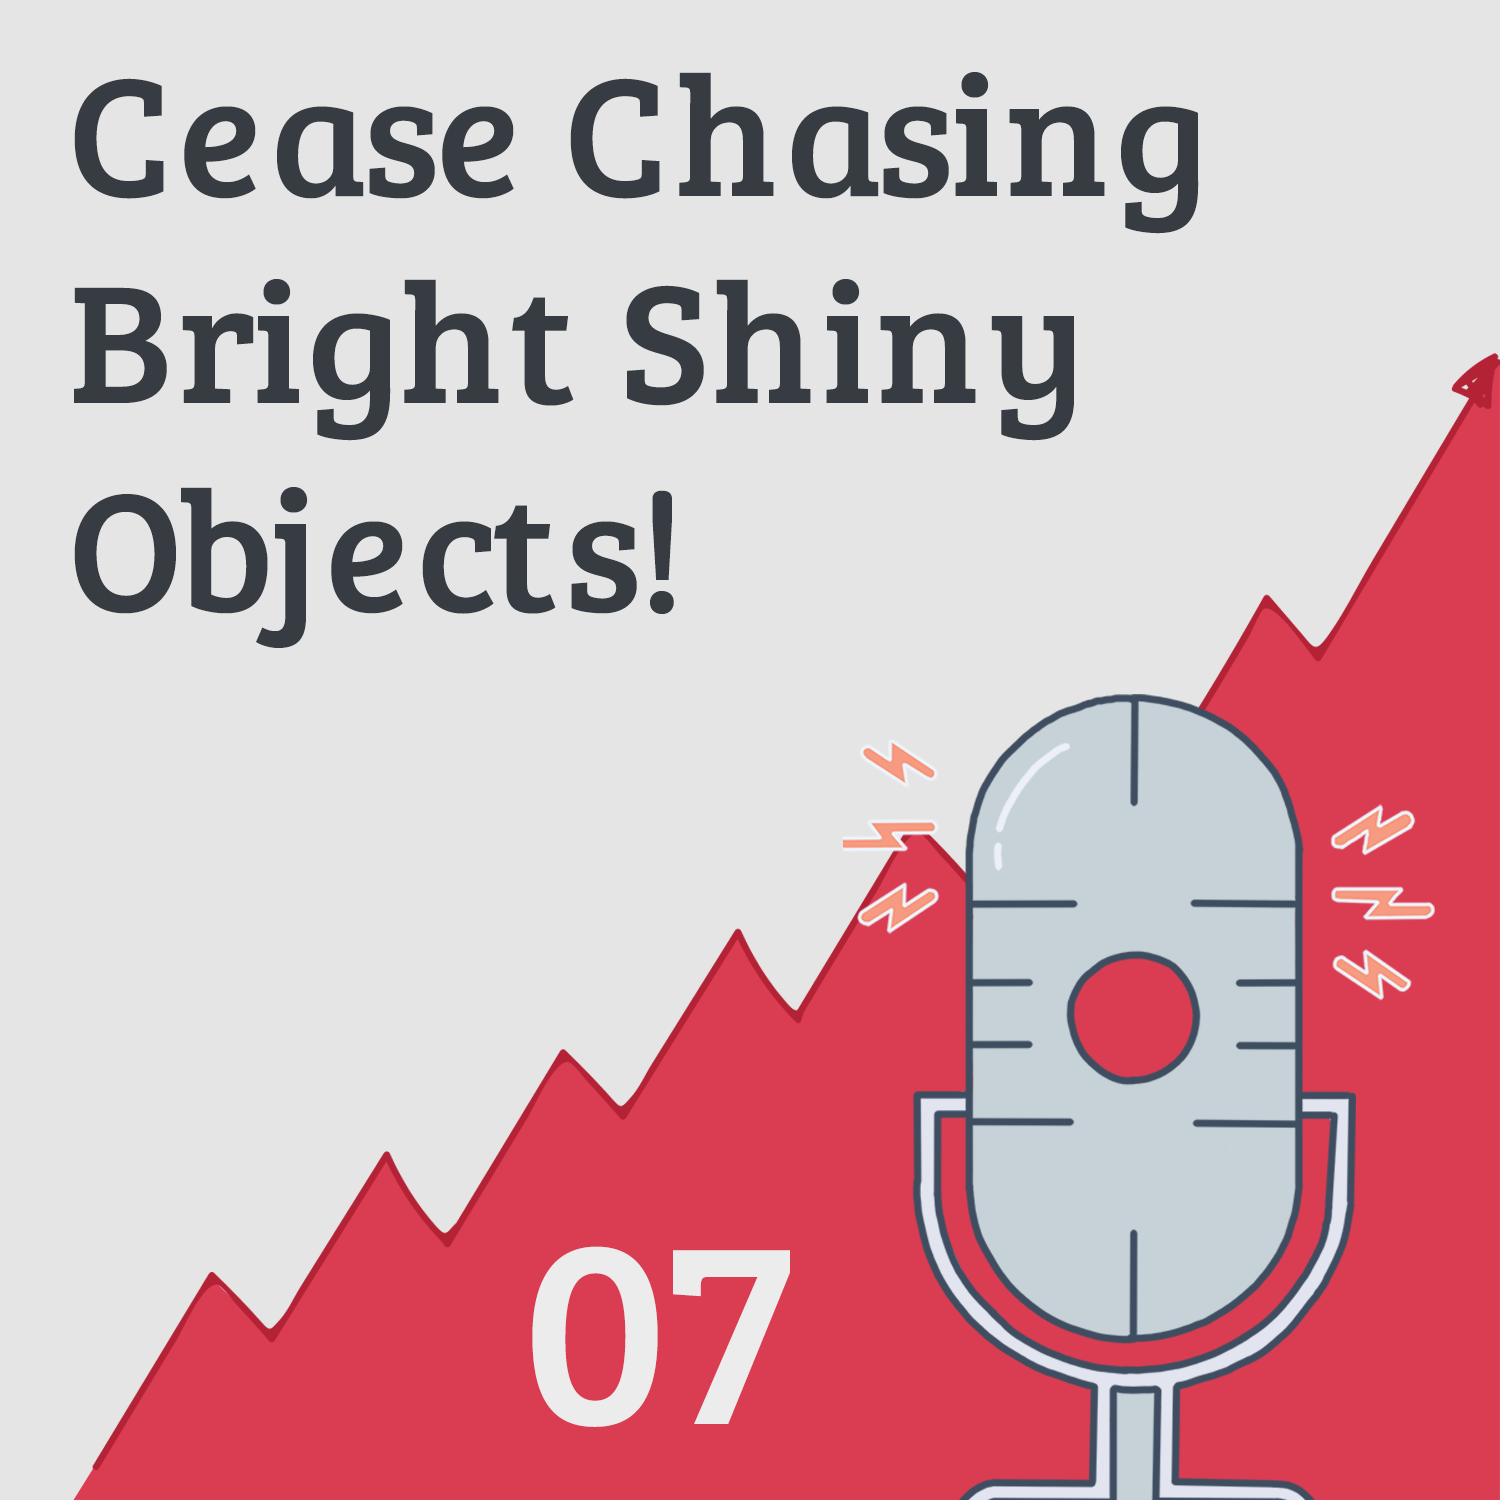 Your Job is to Ship 1: Are You Chasing Bright Shiny Objects?